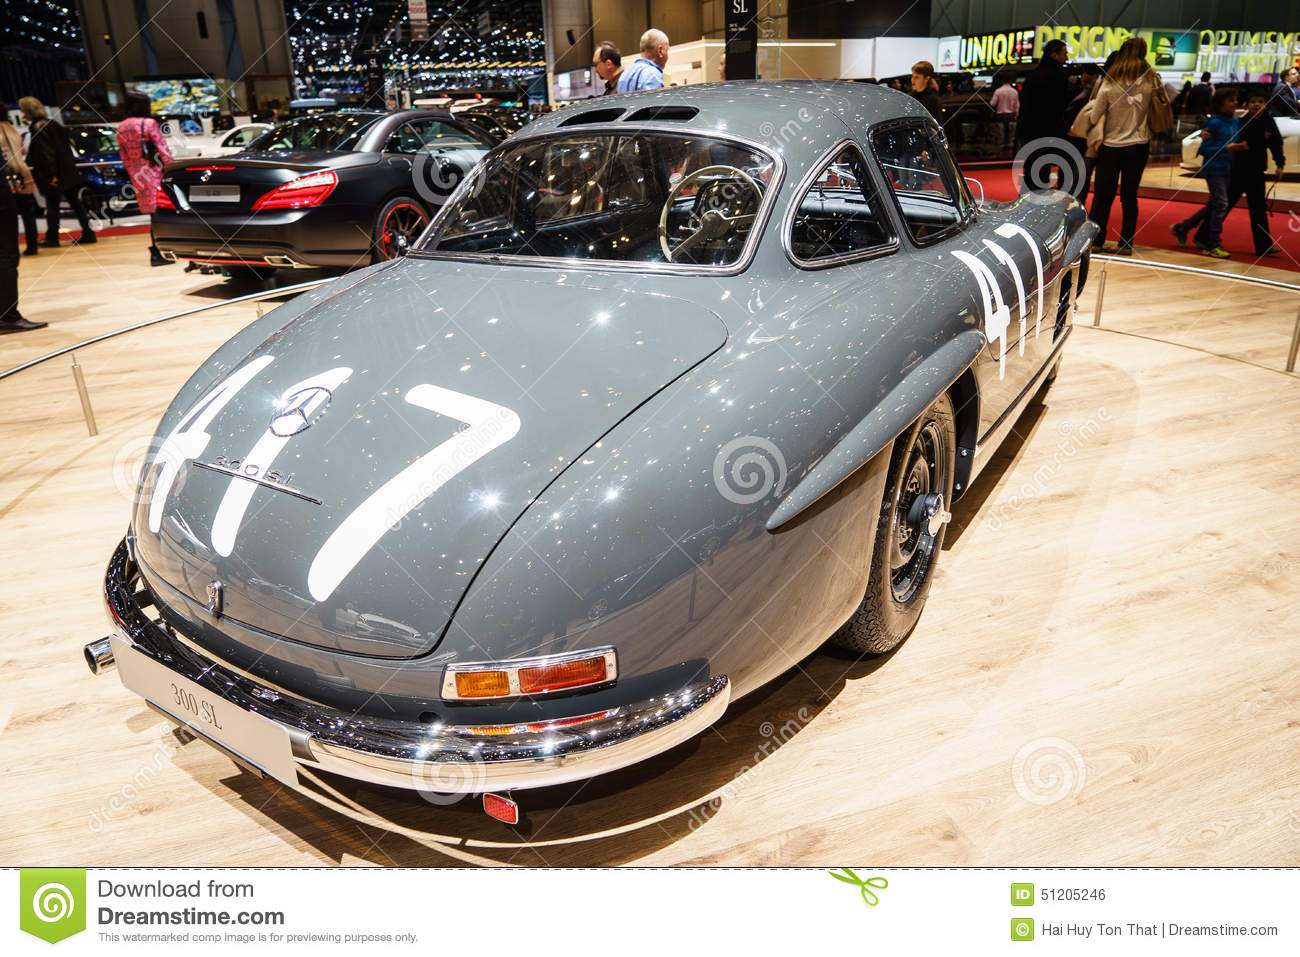 https://thumbs.dreamstime.com/z/mercedes-benz-sl-fitch-mille-miglia-motor-show-geneve-th-international-geneva-palexpo-switzerland-legendary-gullwing-51205246.jpg